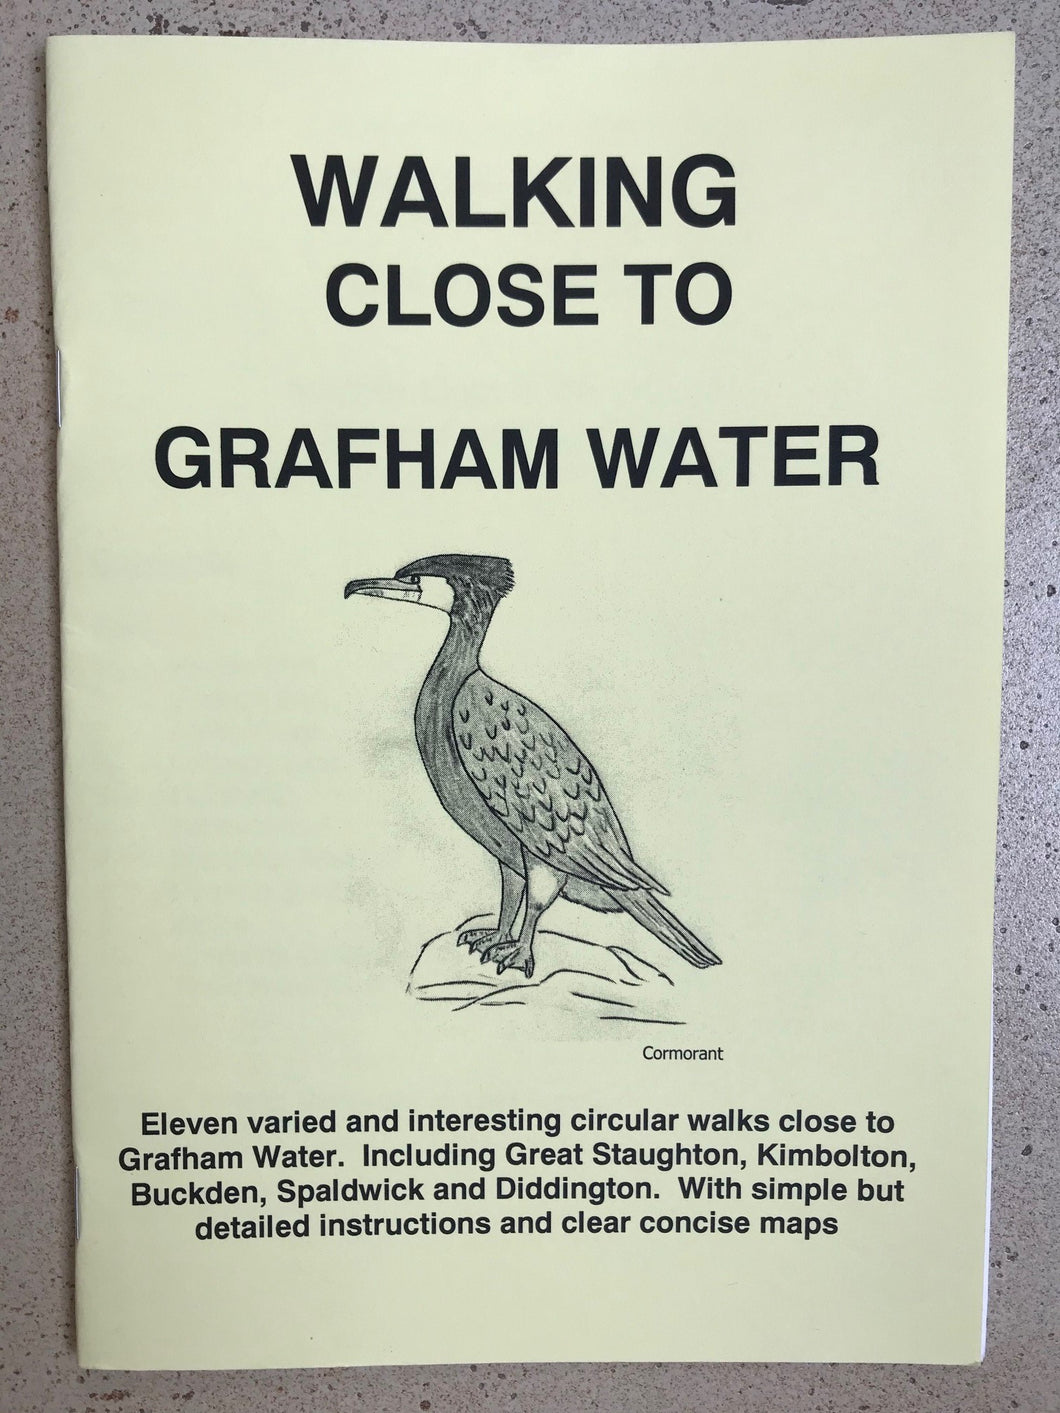 Walks - Walking close to Grafham Water